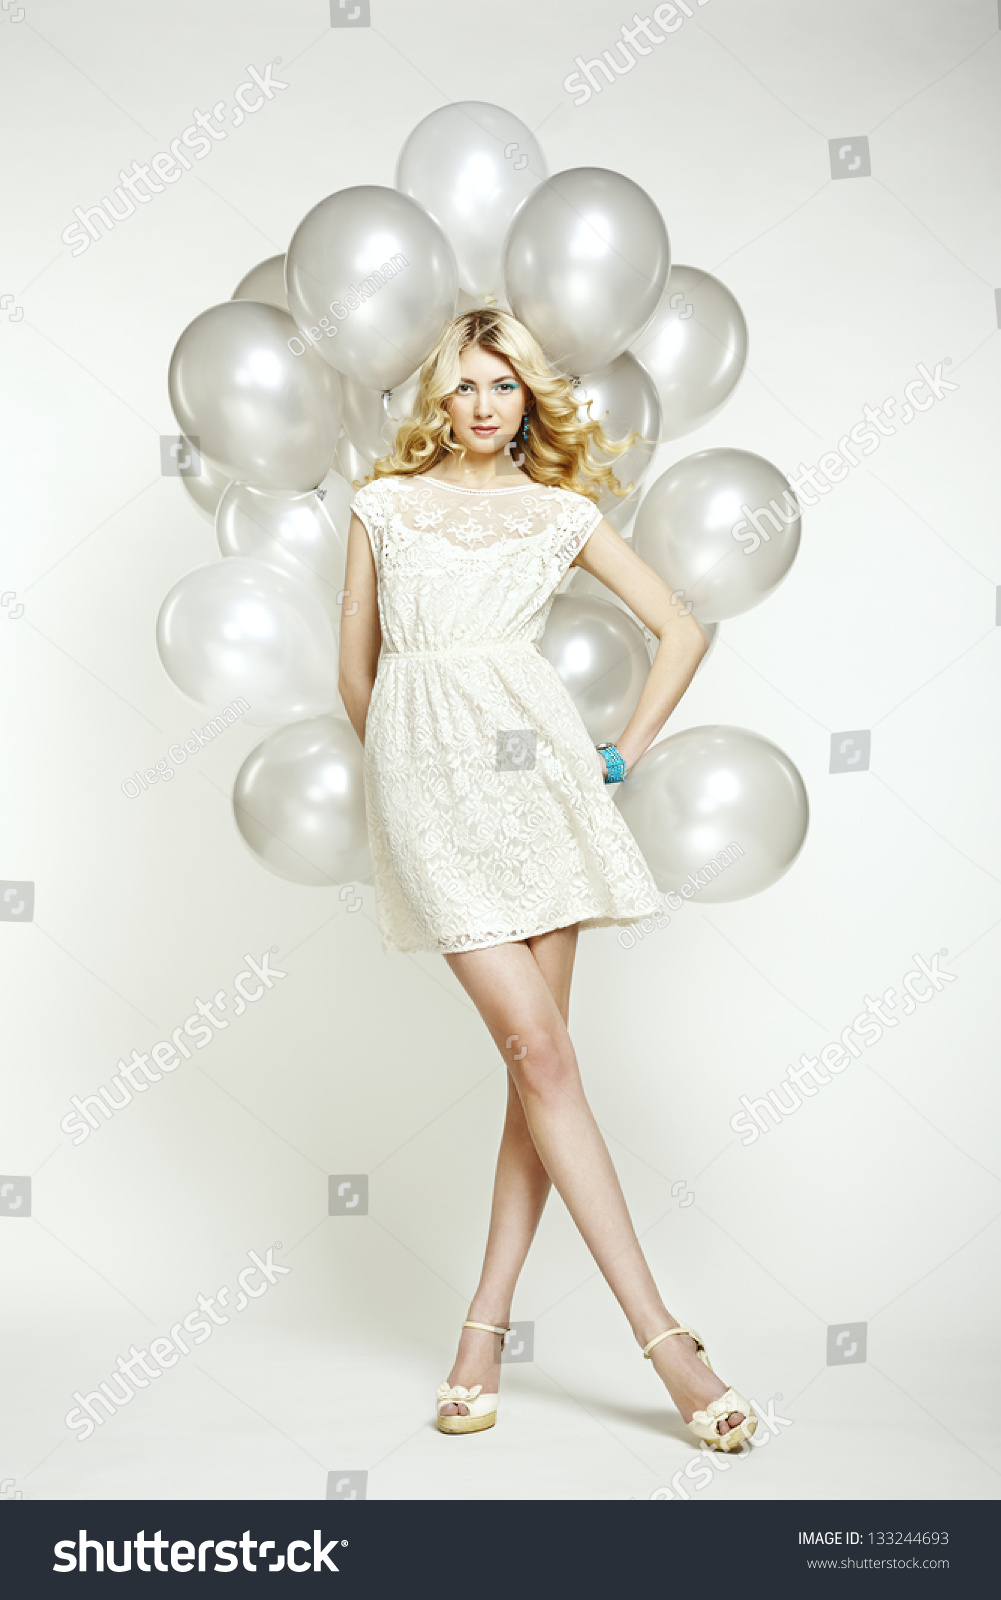 Fashion photo of beautiful woman with balloons girl posing studio photo